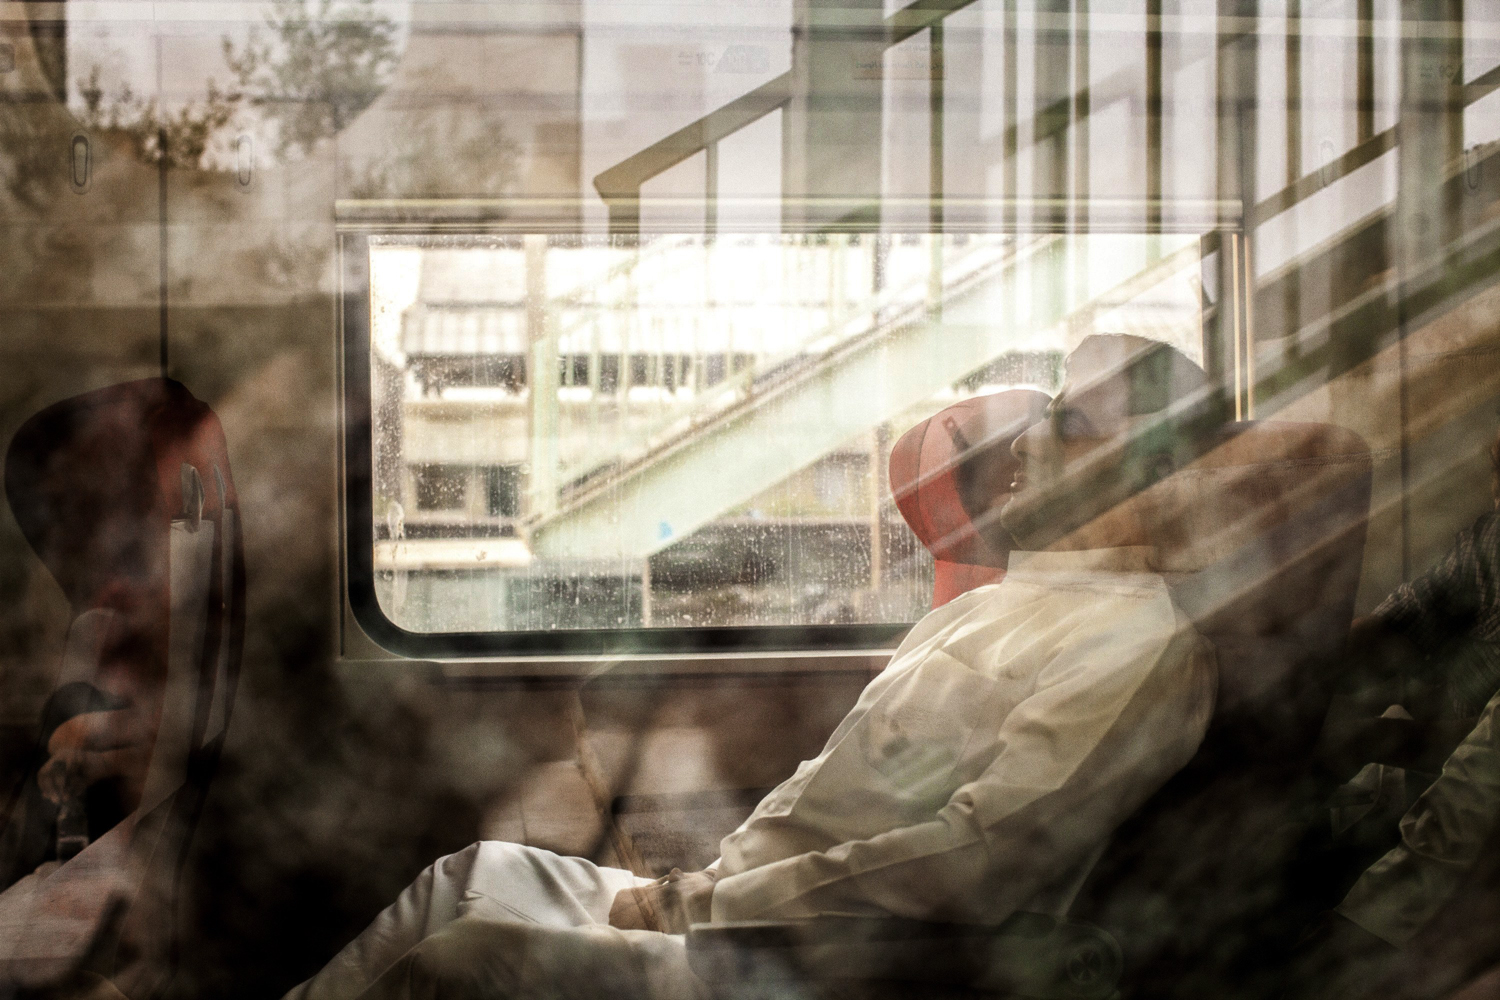 A passenger rested in the first class cabin aboard a a new Chinese-built train as it prepared to depart  the Basra train station, bound for Baghdad — a trip across the country's Shiite dominated south,  Aug. 29, 2014.